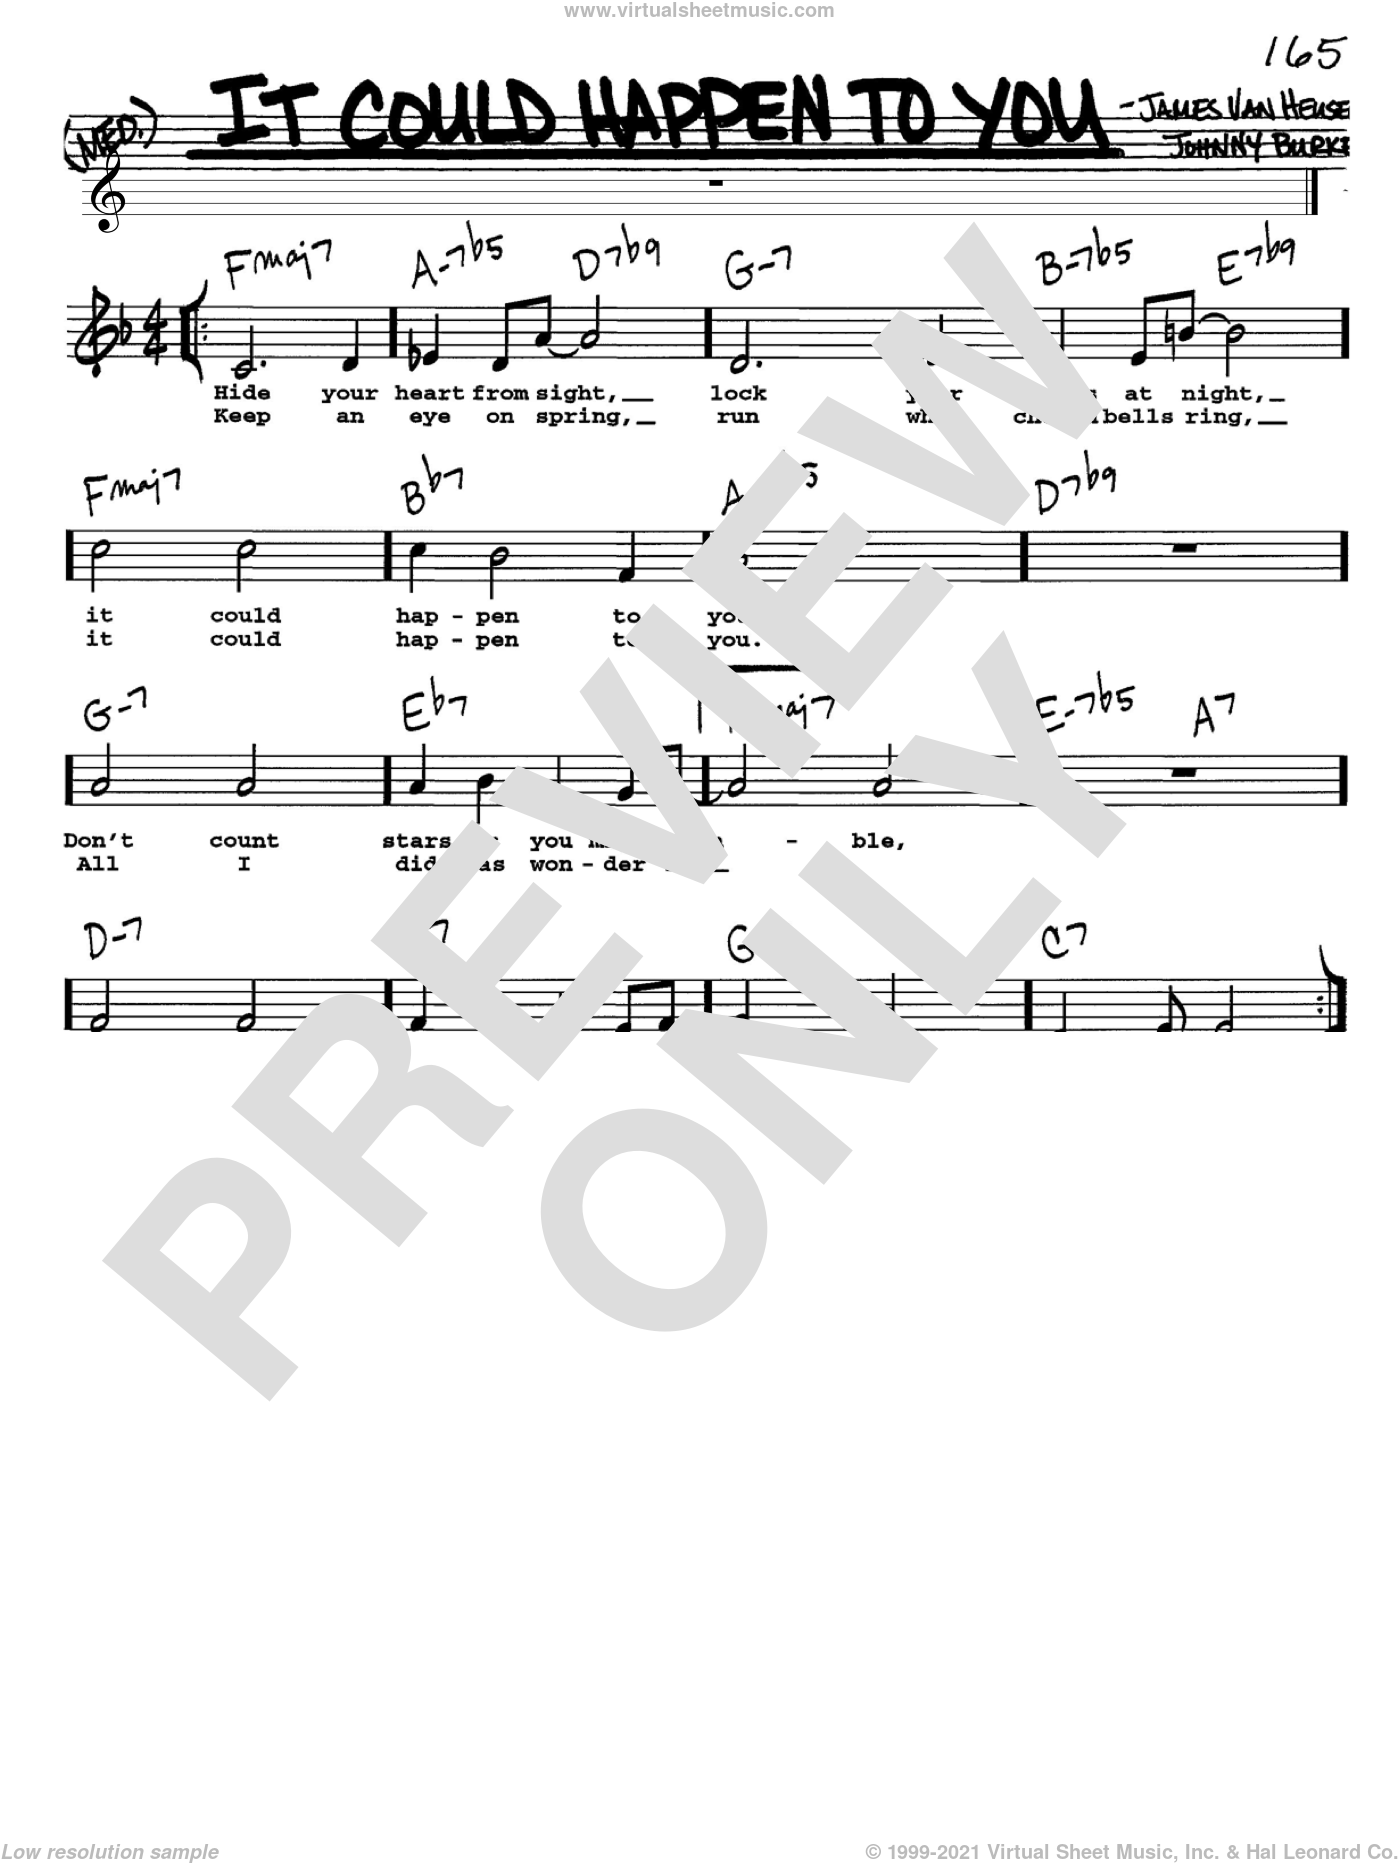 It Could Happen To You sheet music for voice and other instruments (Vocal Volume 1) by John Burke, Frank Sinatra and Jimmy van Heusen. Score Image Preview.